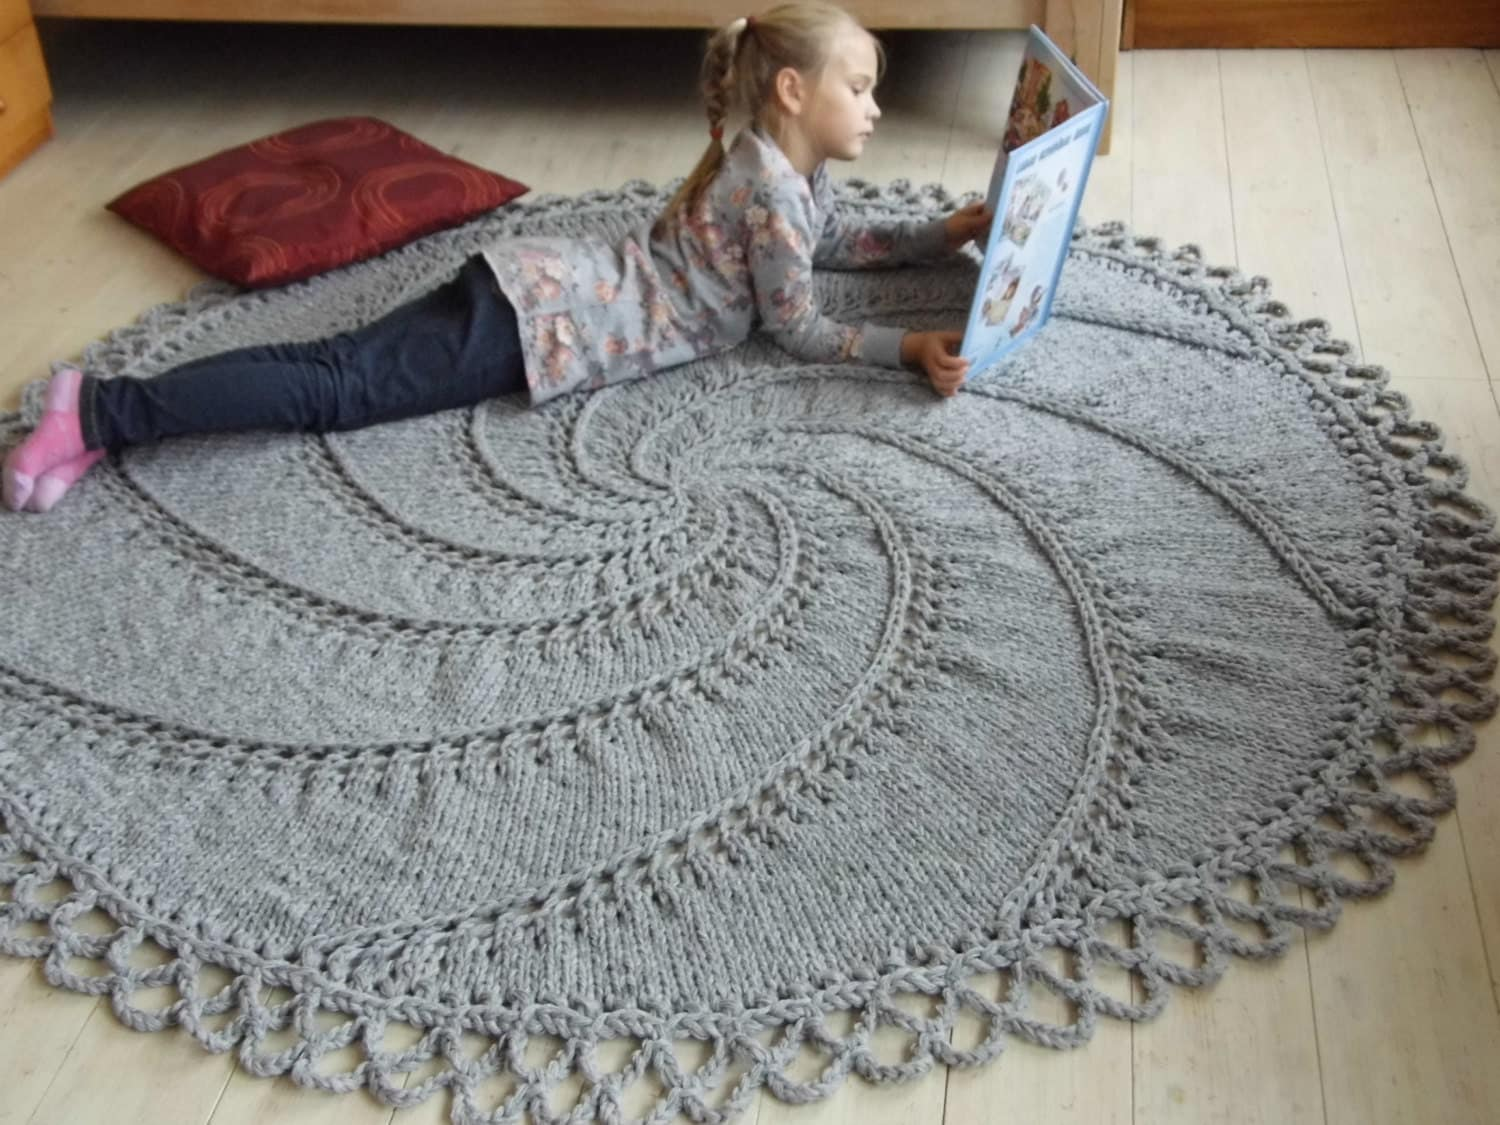 75 Big Stitch Hand Knit Wool Rug Natural Gray